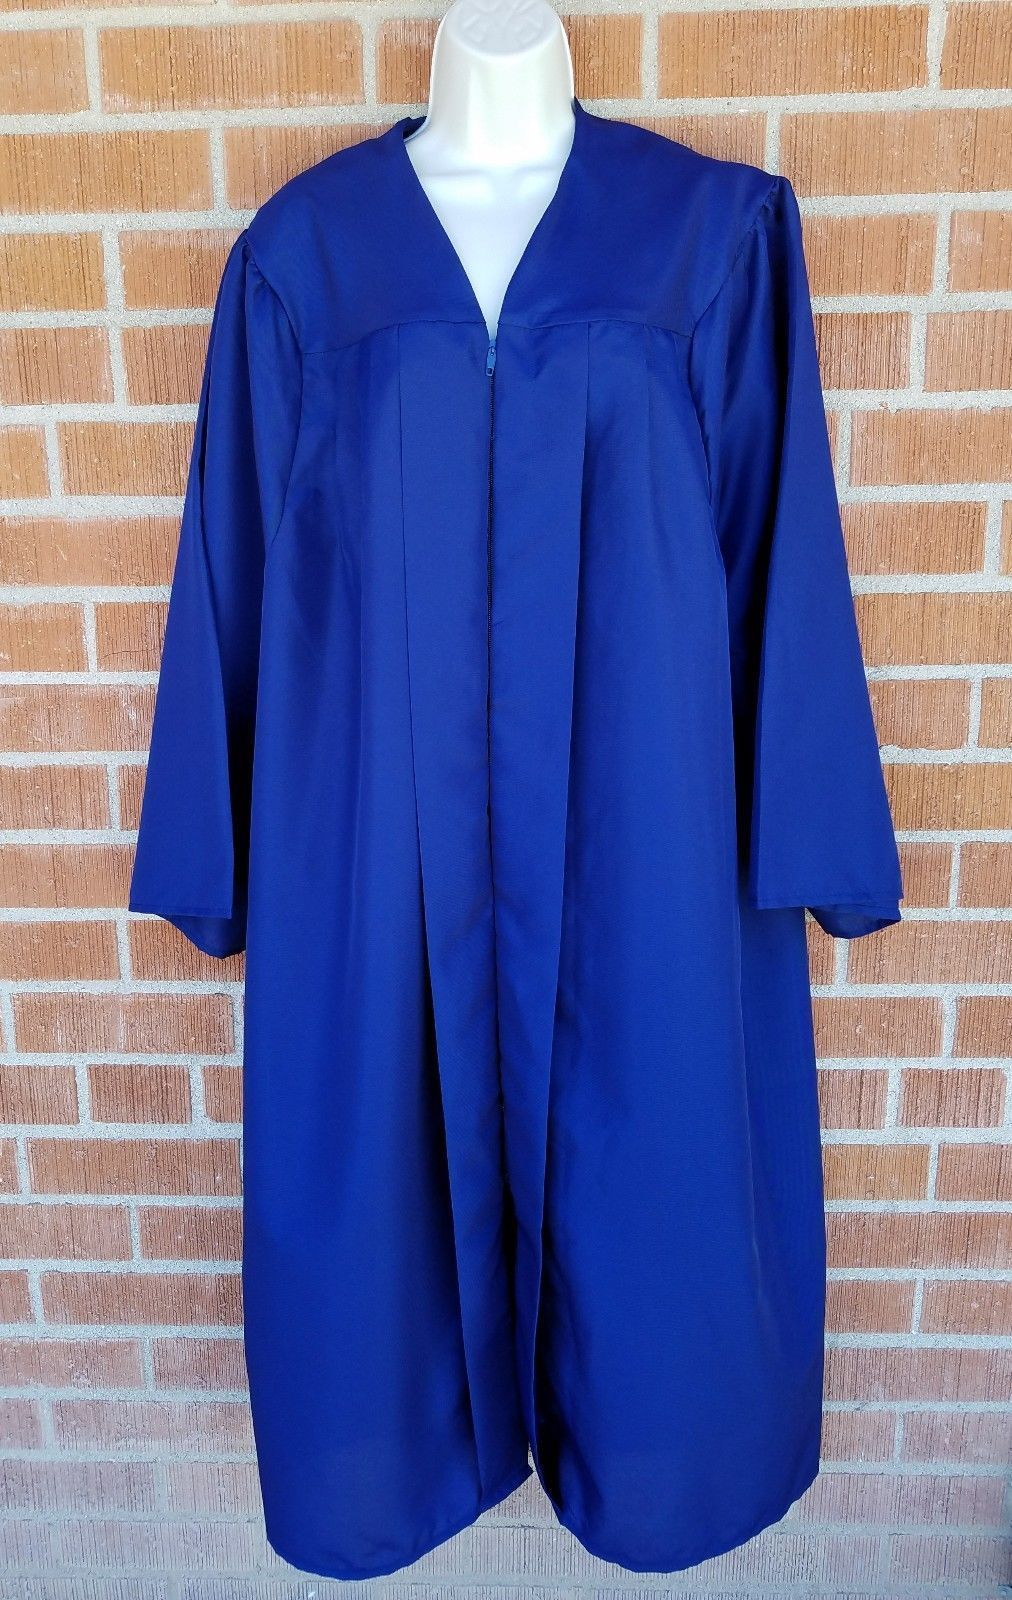 Attractive Cap And Gown Jostens Component - Images for wedding gown ...